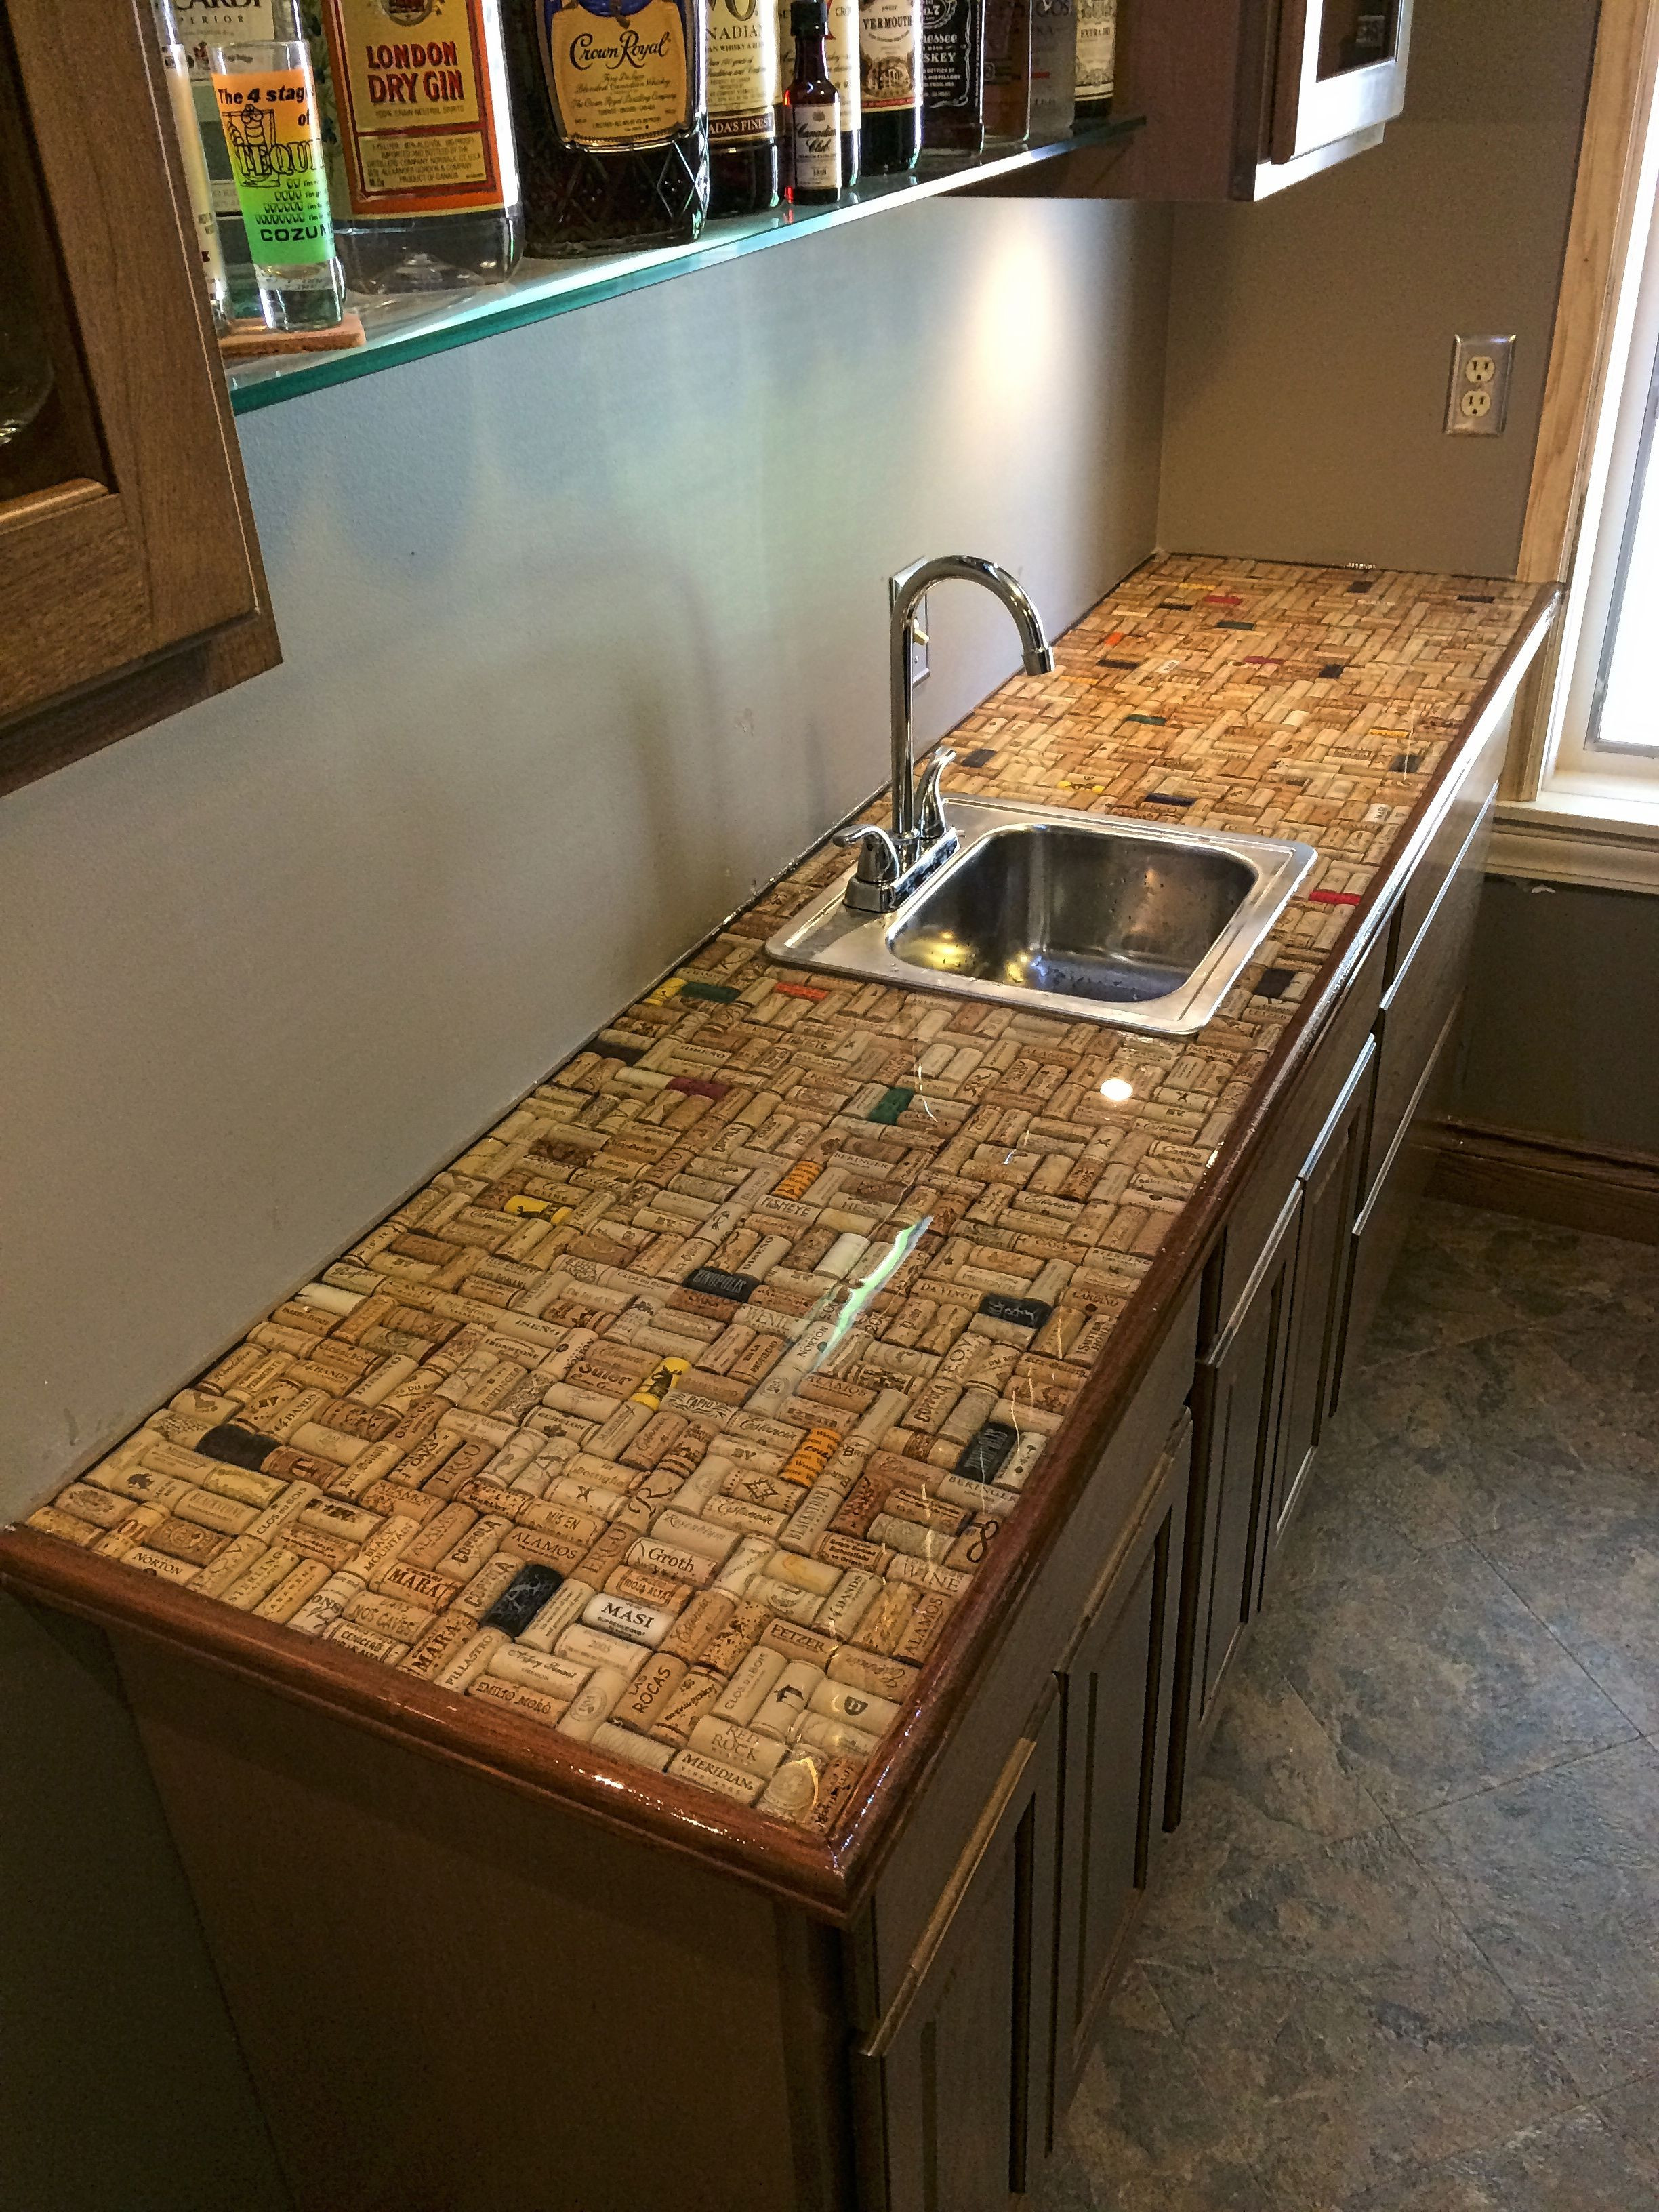 Best ideas about DIY Epoxy Countertops . Save or Pin Bartop Epoxy epoxy resin coating Now.